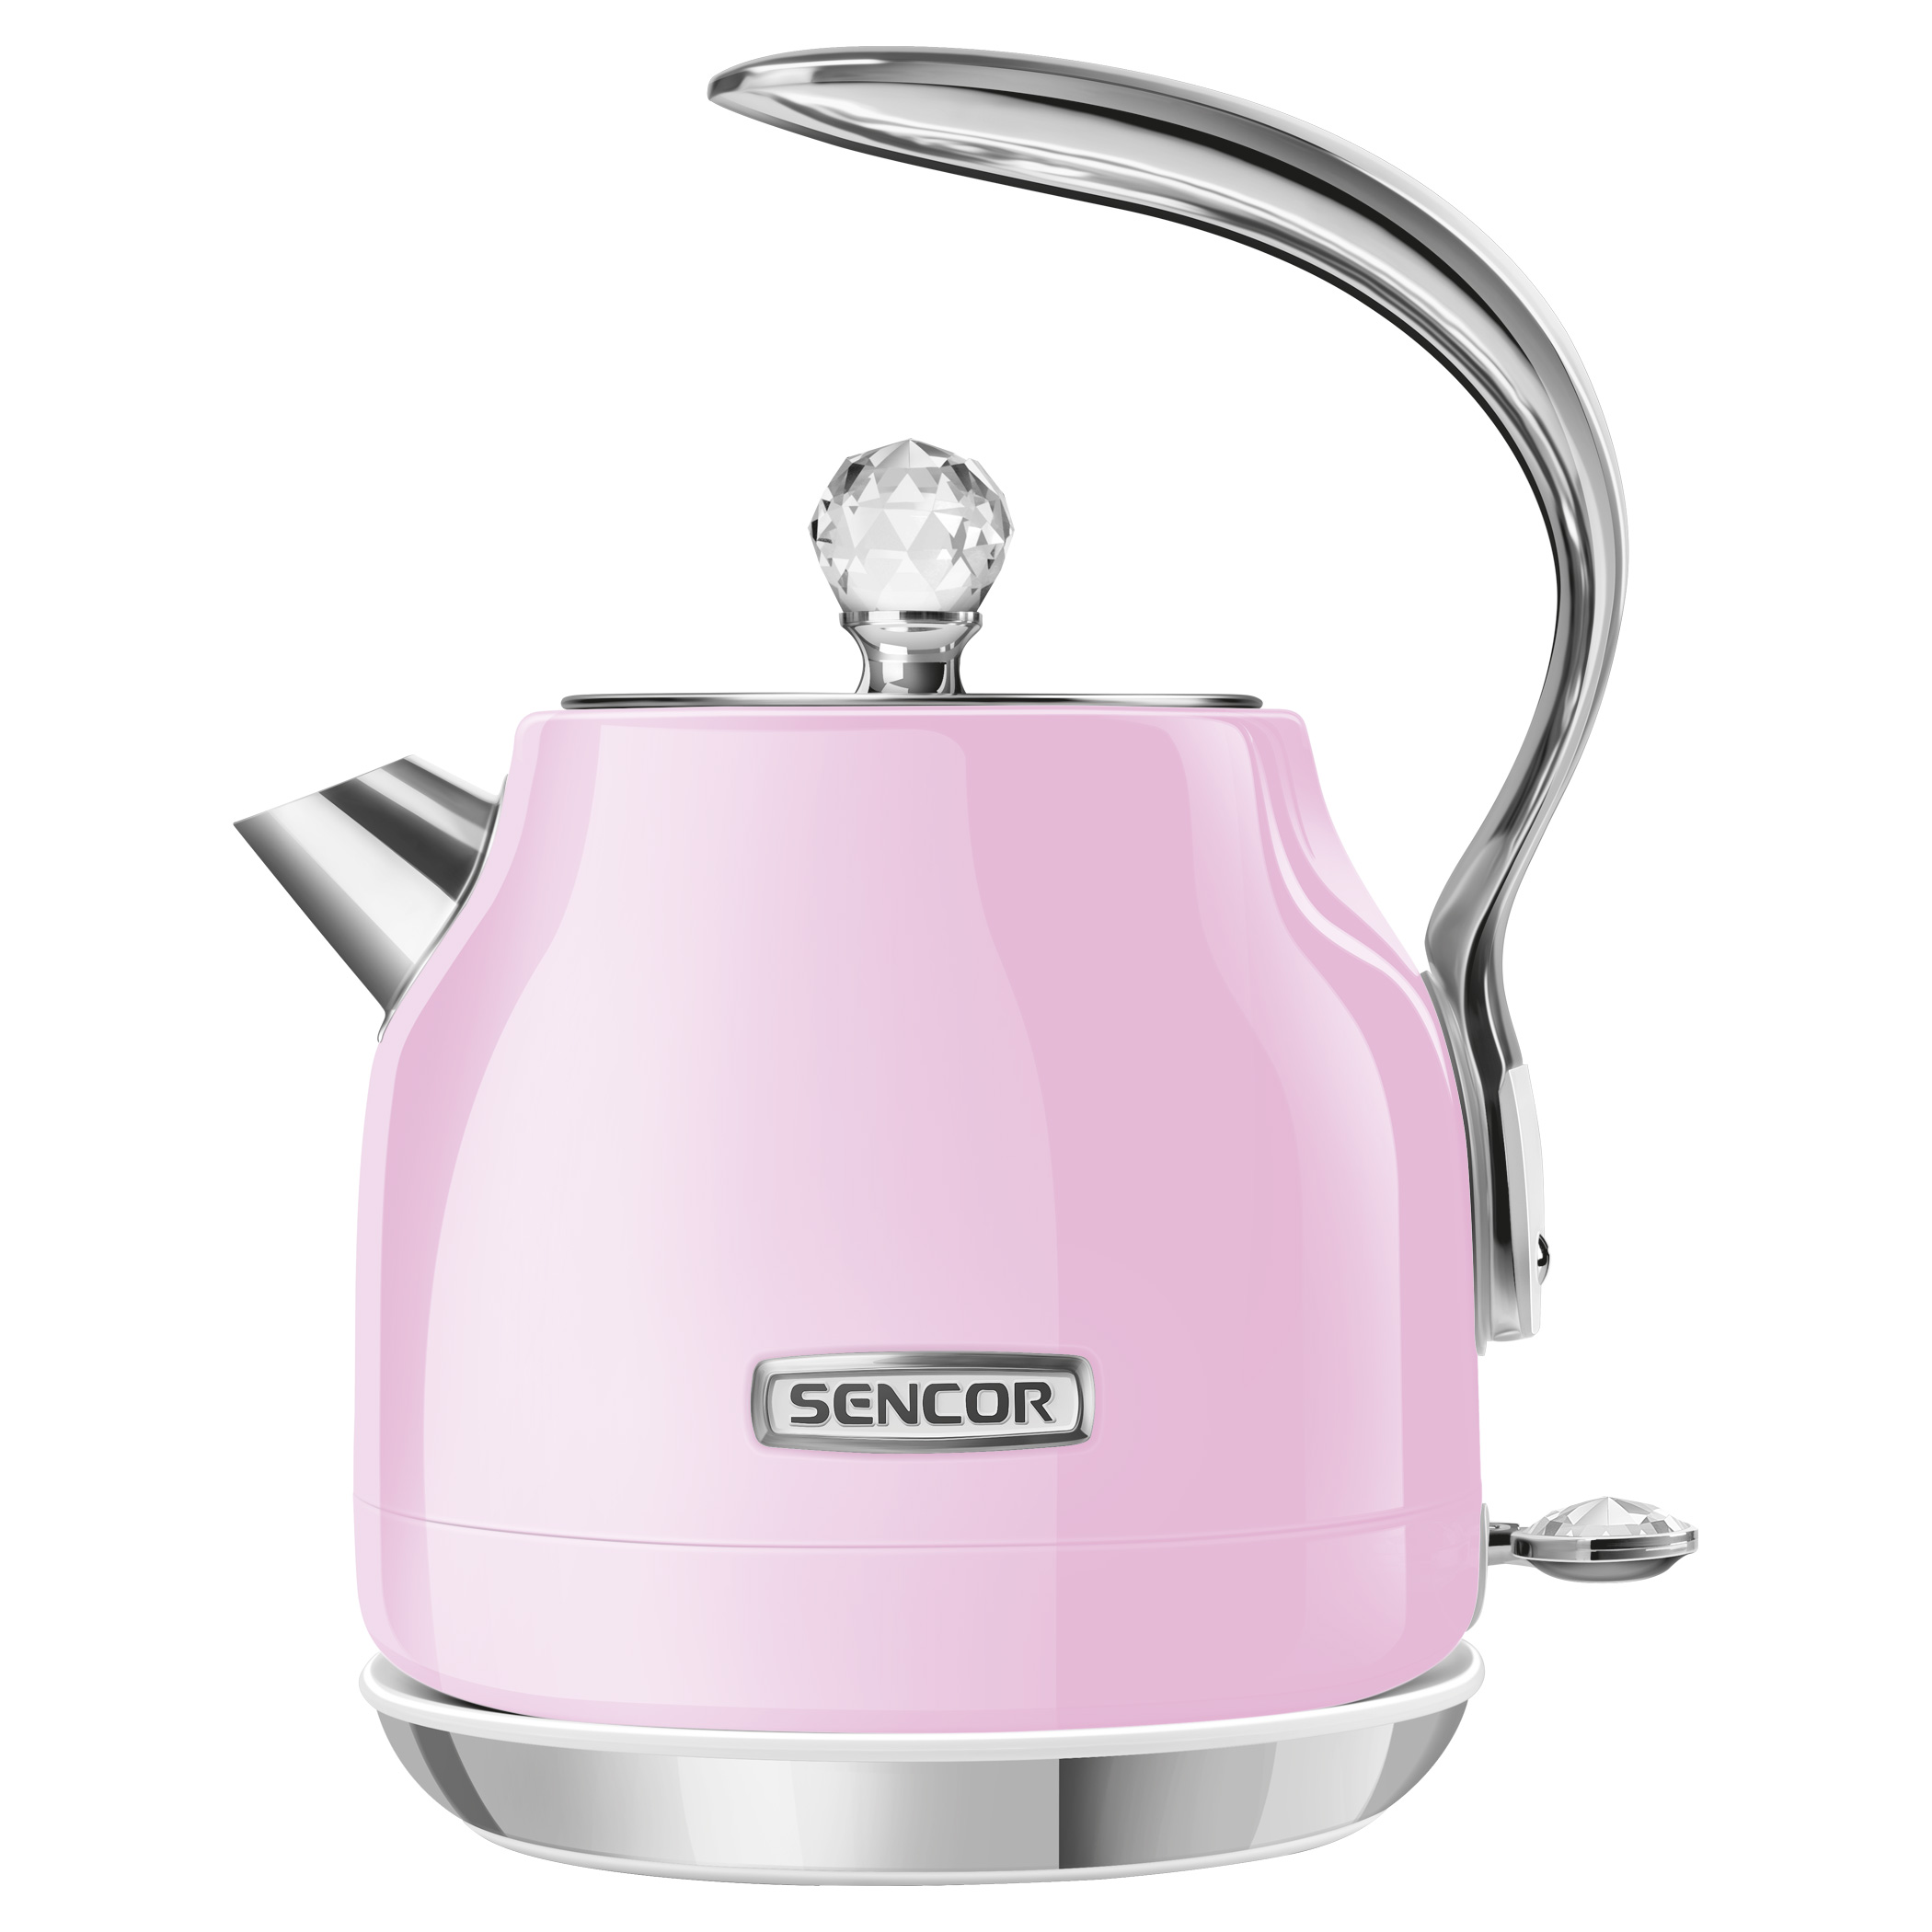 SENCOR SWK48RS-NAB1 ELECTRIC KETTLE PINK